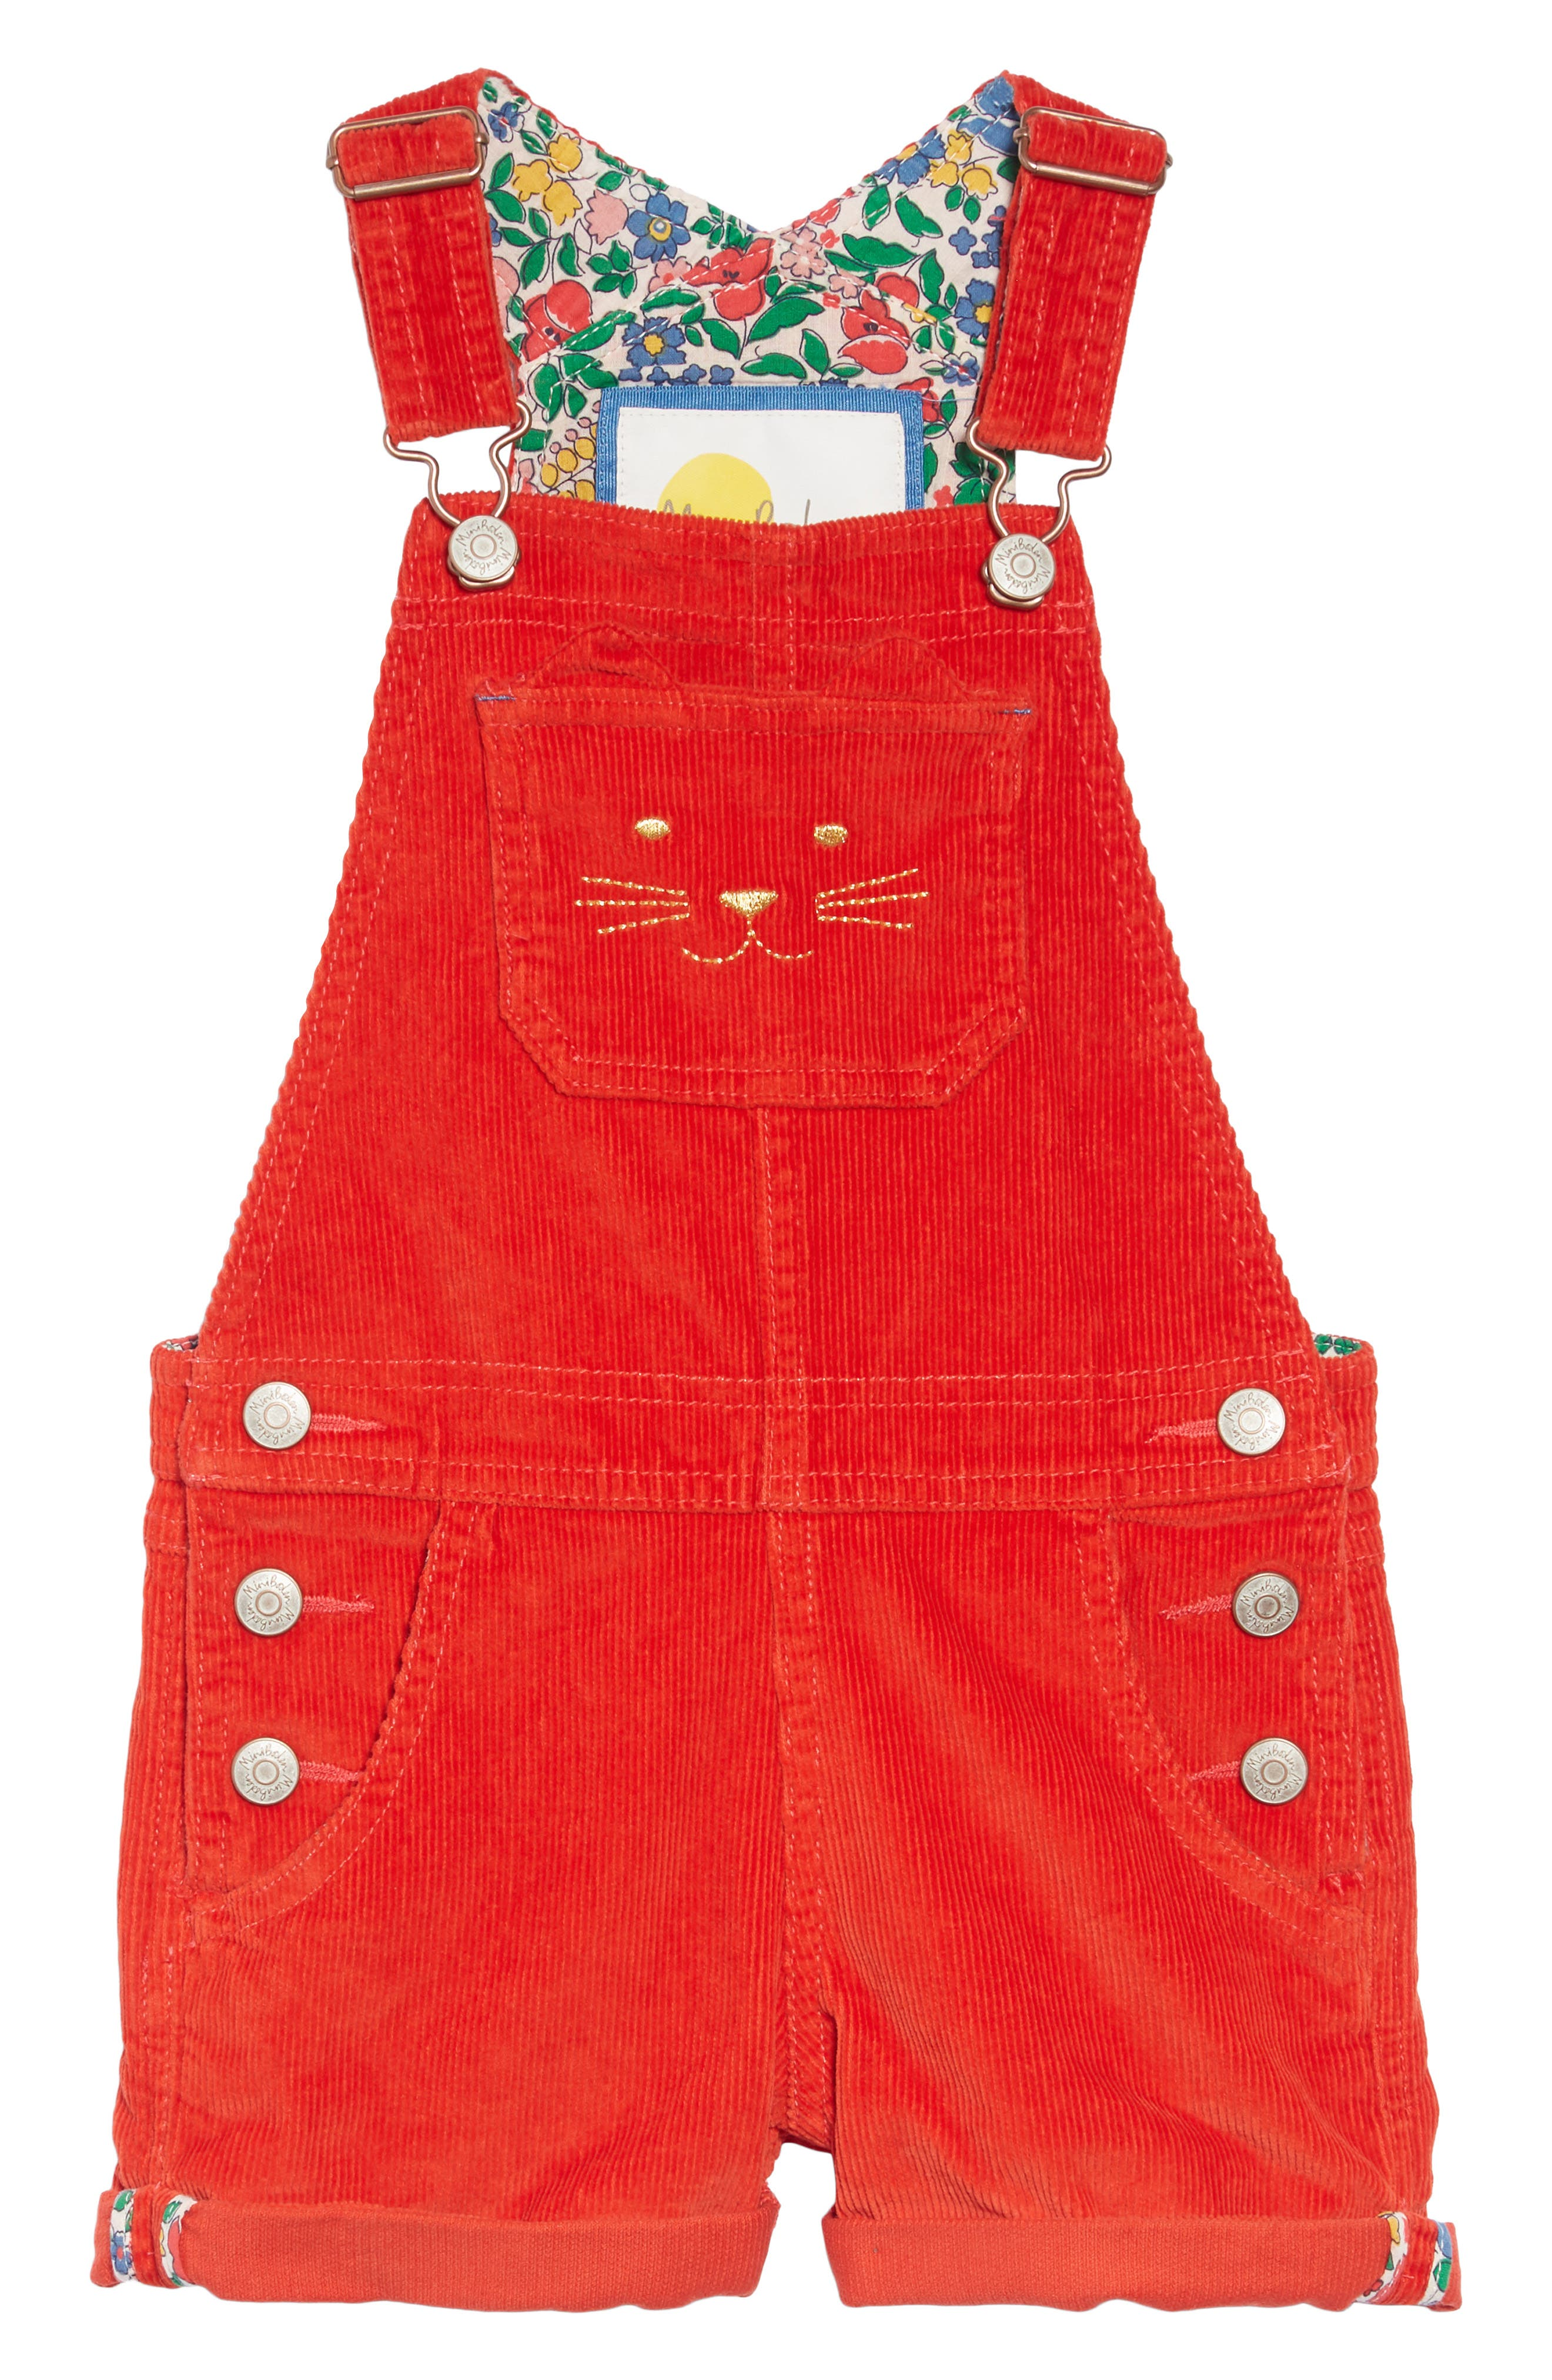 Dungarees Short Overalls,                             Main thumbnail 1, color,                             RED POPPY RED